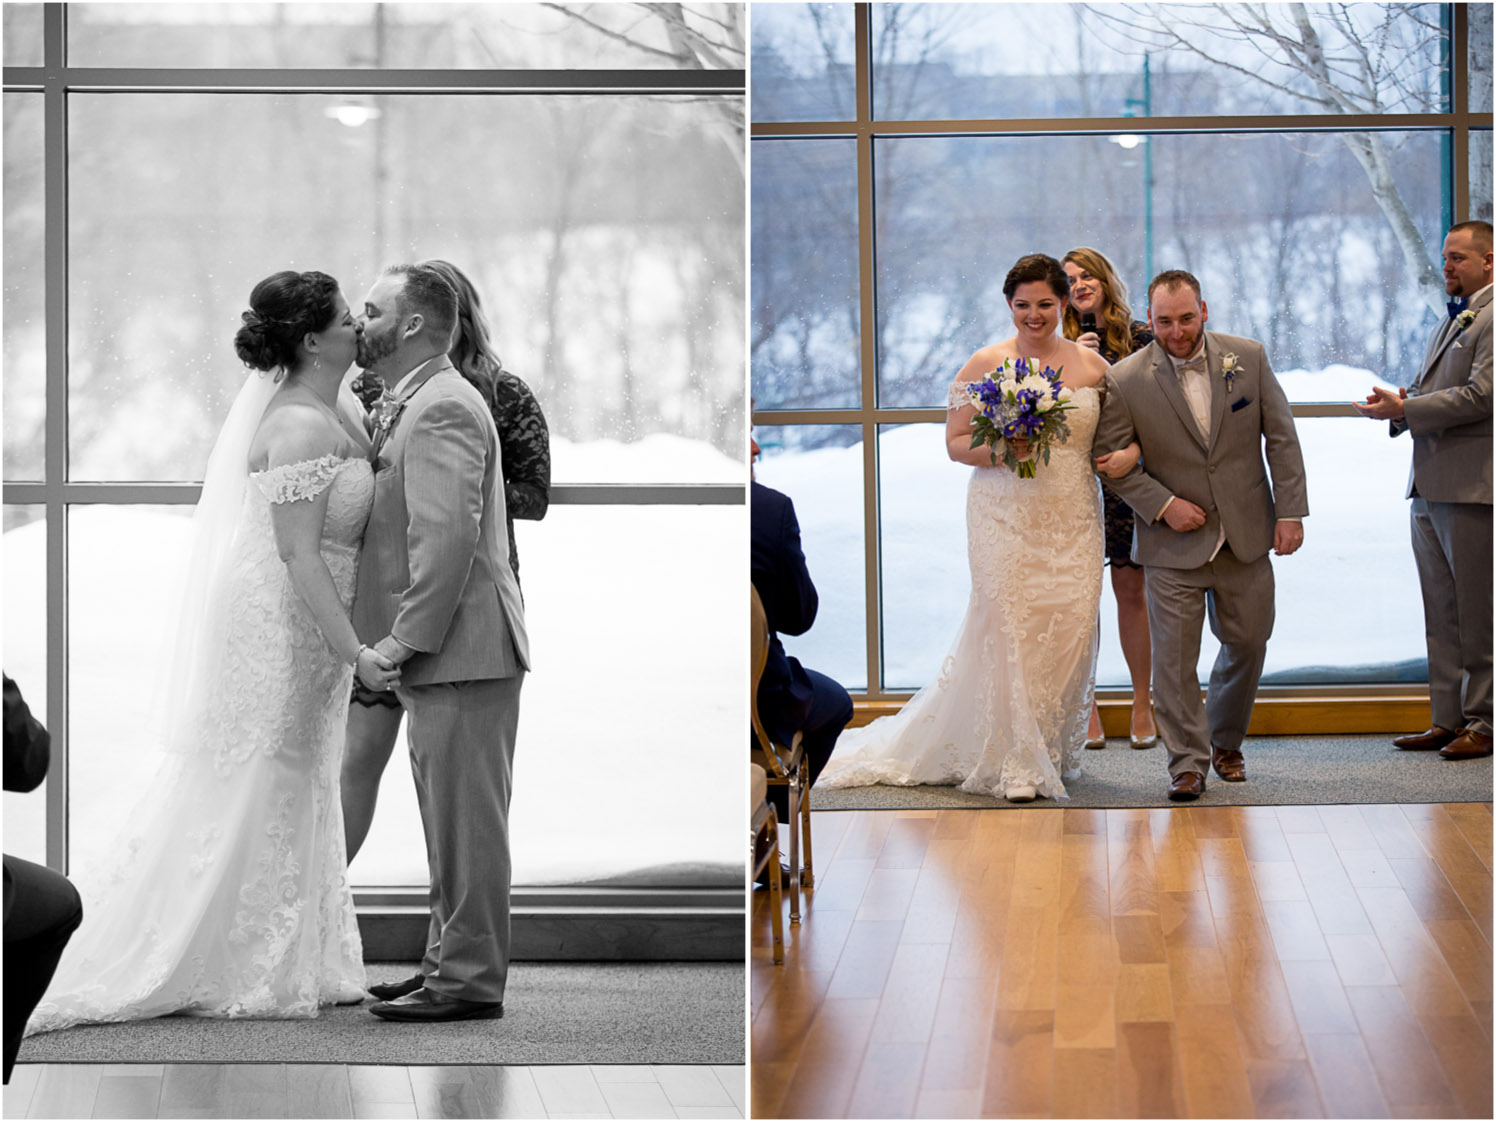 19-eagan-community-center-weddings-minnesota-winter-rain-wedding-ceremony-first-kiss-mahonen-photography.jpg